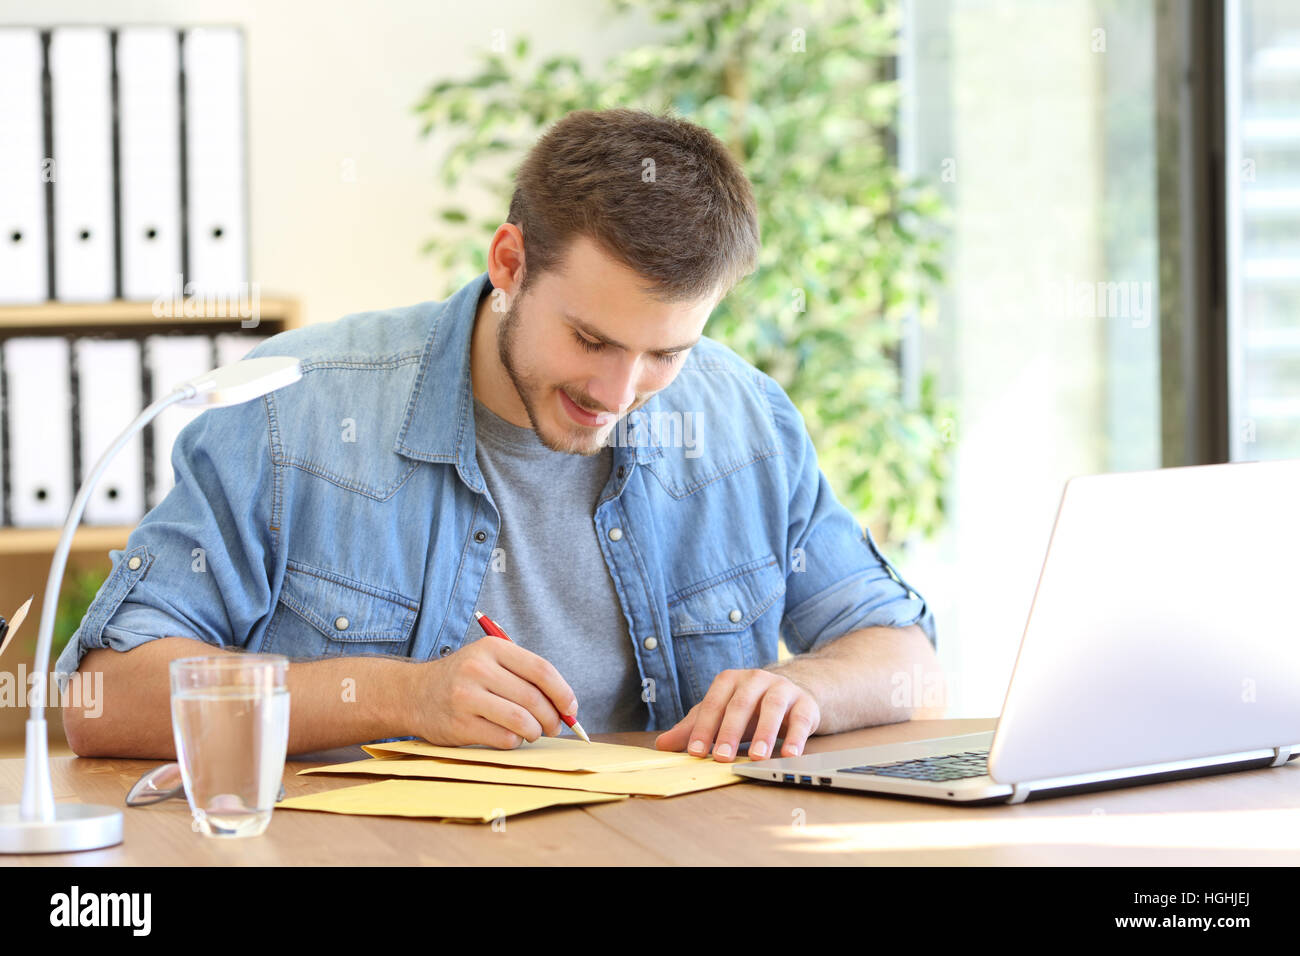 Entrepreneur writing address in a padded envelope before to send it - Stock Image